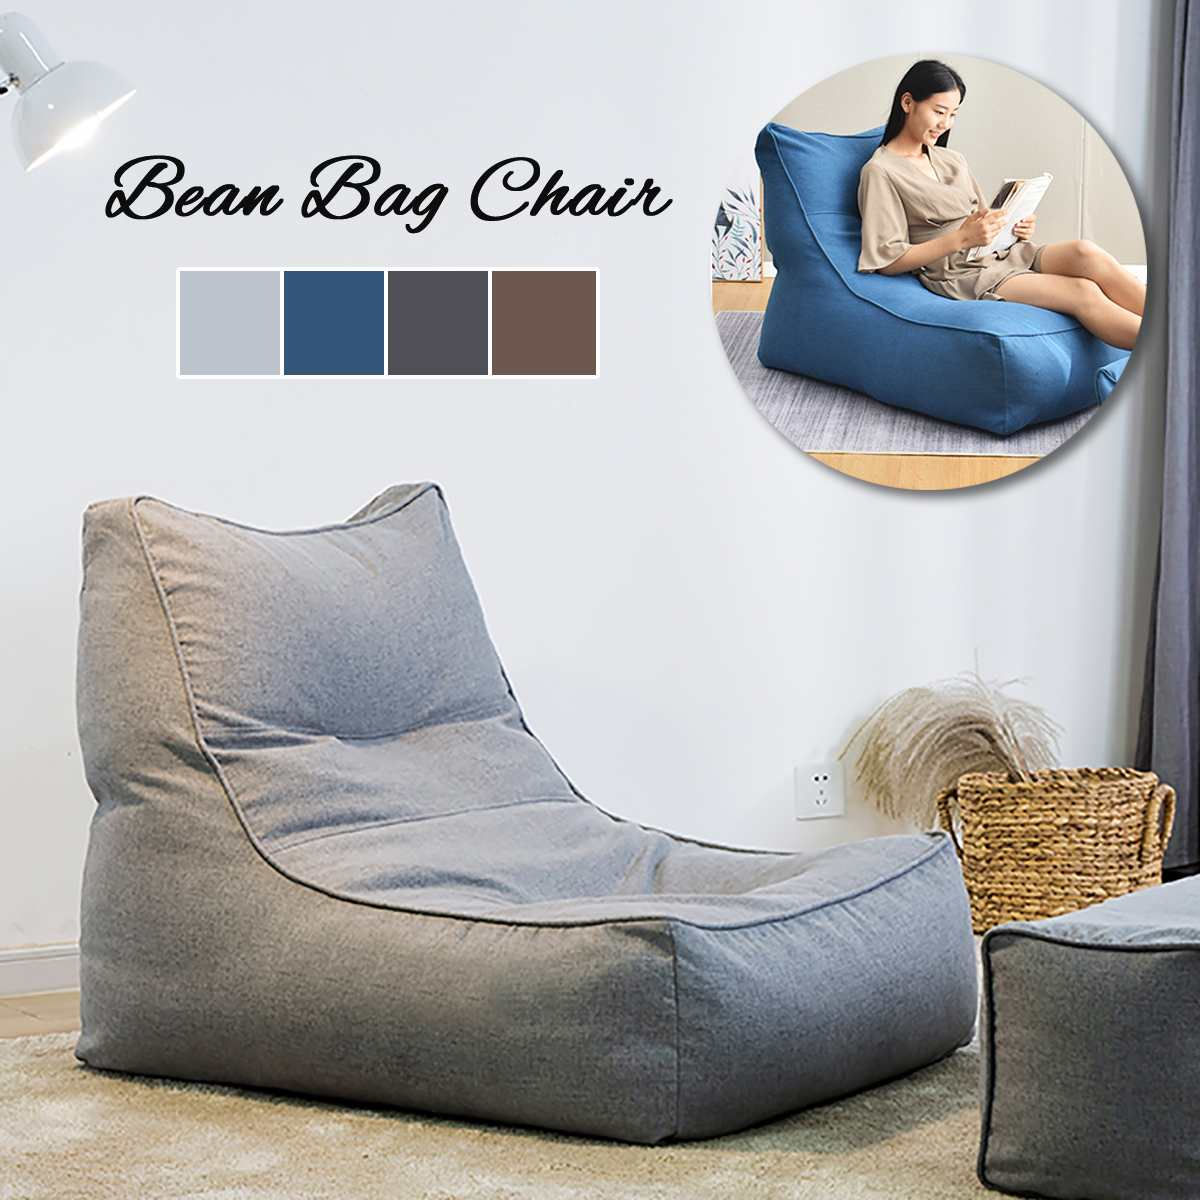 Lazy BeanBag Sofas Cover Chairs without Filler Linen Cloth Lounger Seat Bean Bag Pouf Puff Couch Tatami Living Room Furniture image